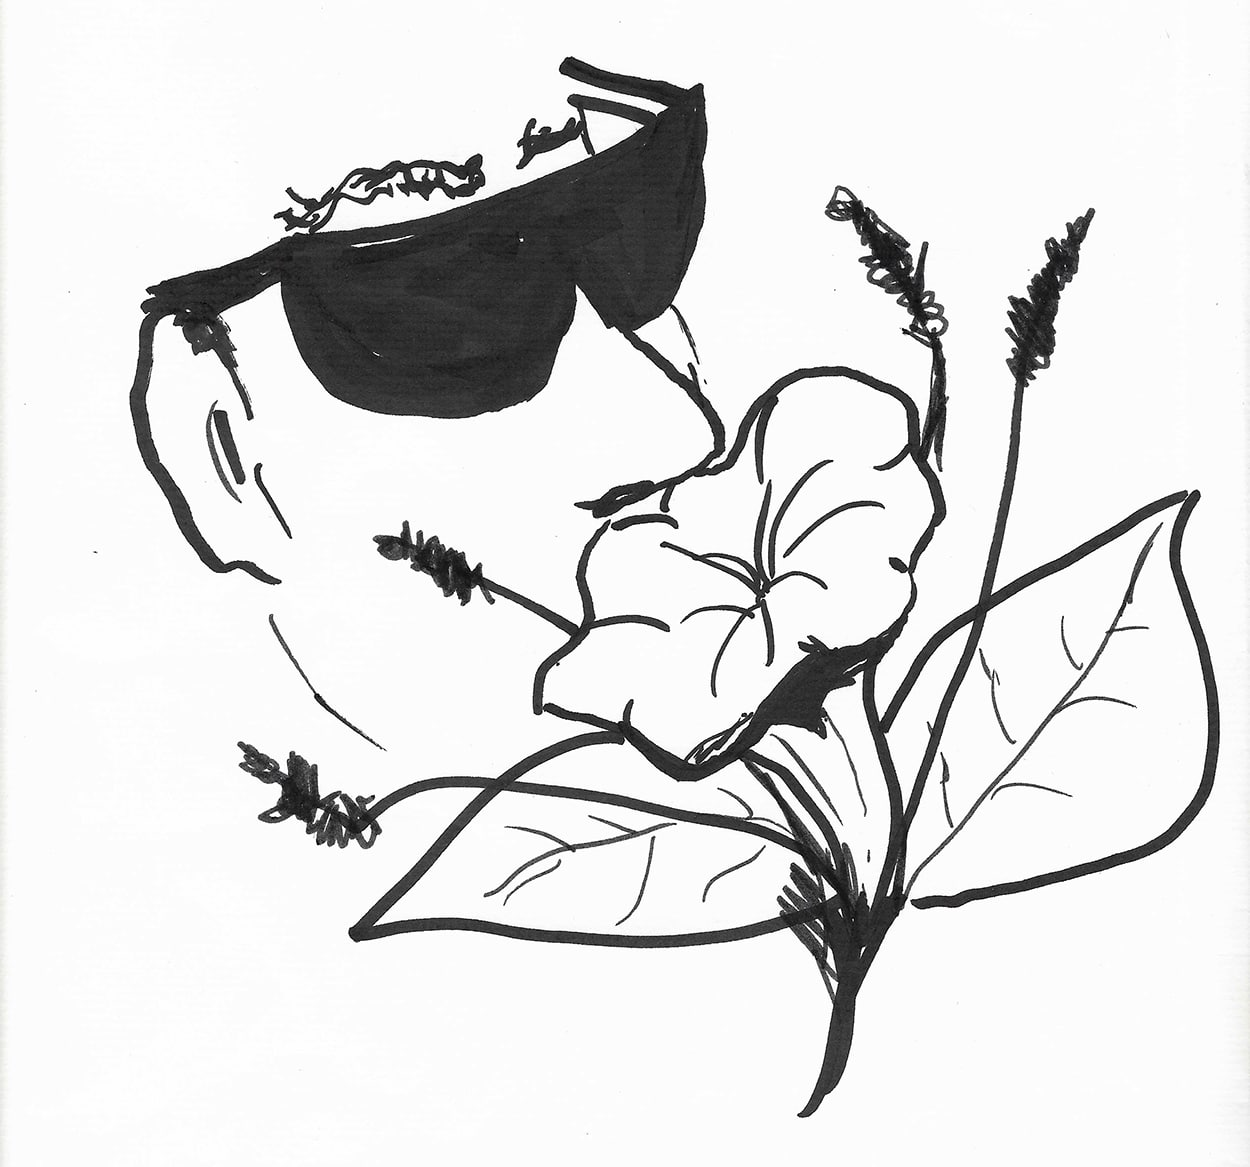 Sketch of person with dark sunglasses smelling a flower.